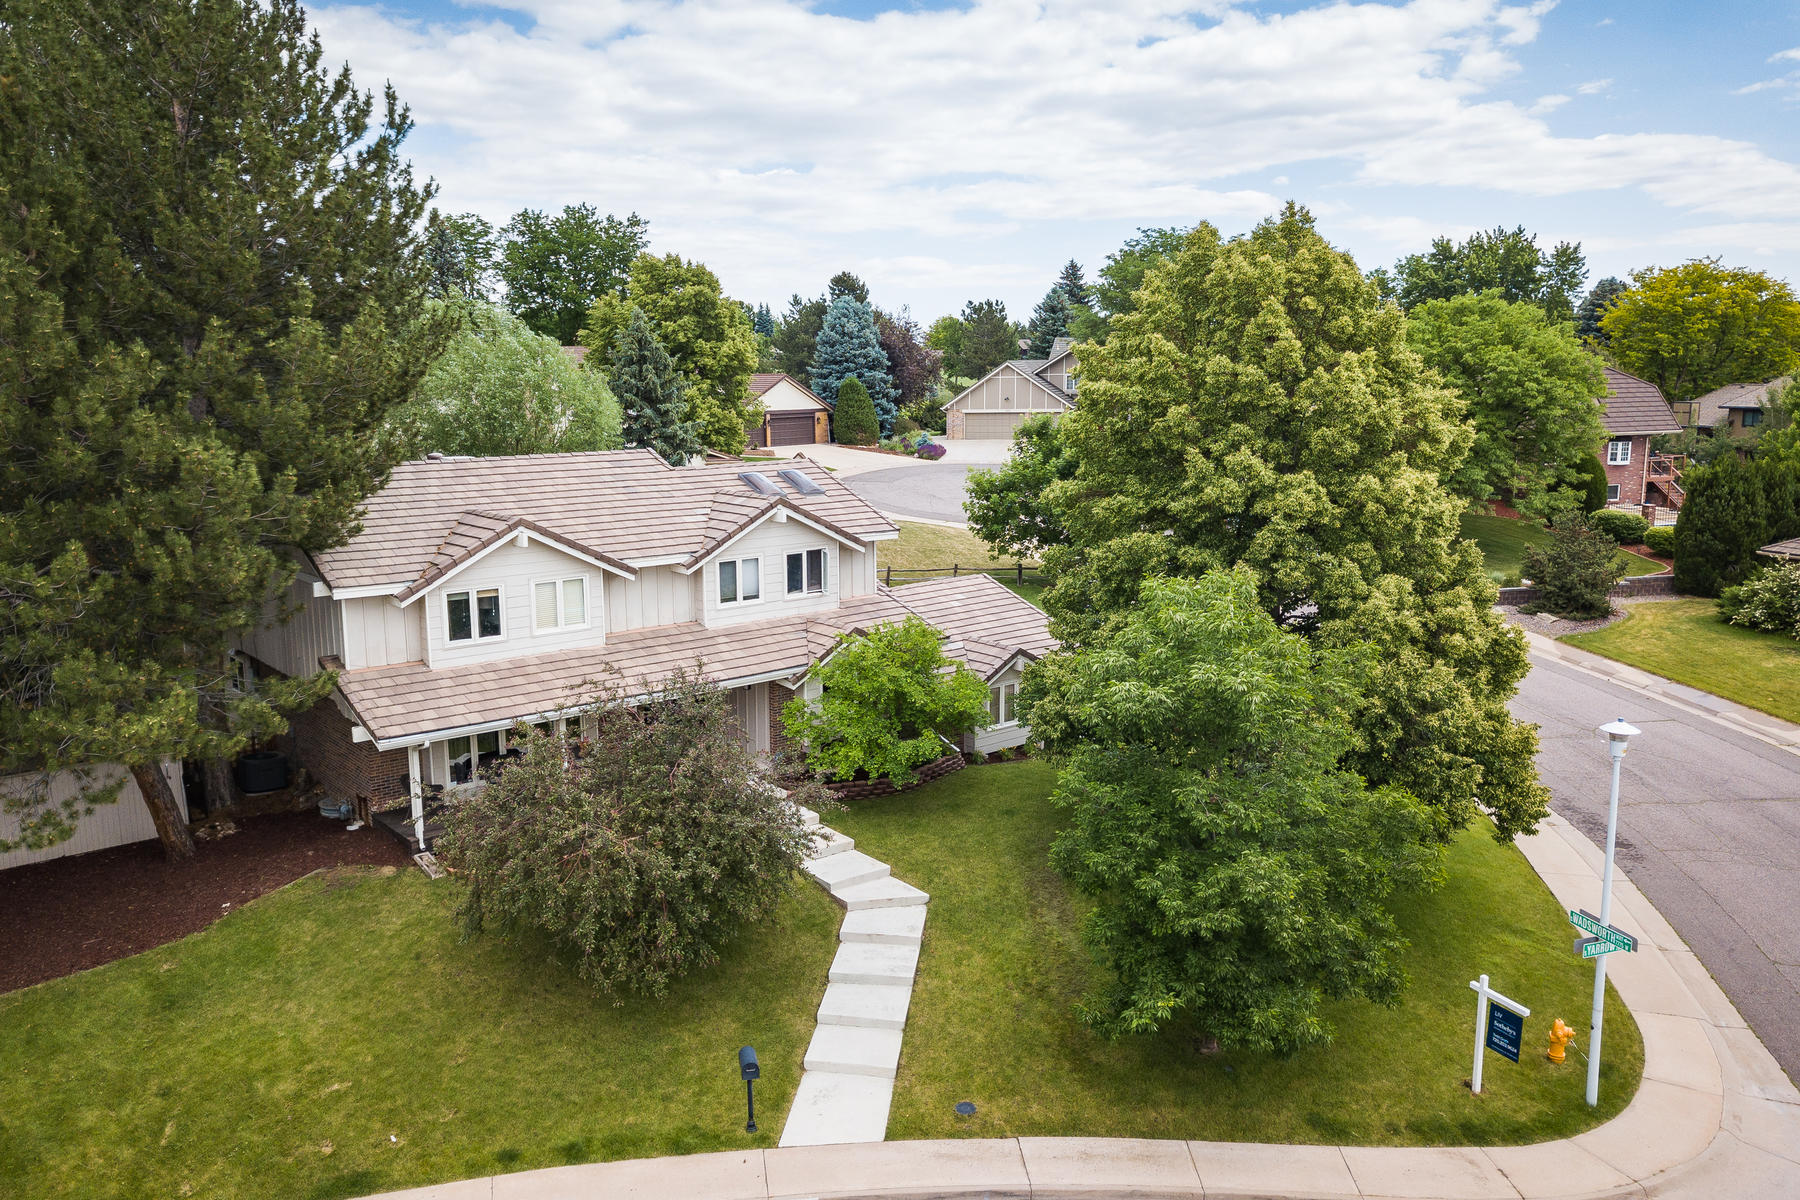 Single Family Homes for Sale at A rare treasure in Columbine Knolls Estates 7830 S Yarrow St, Littleton, Colorado 80128 United States